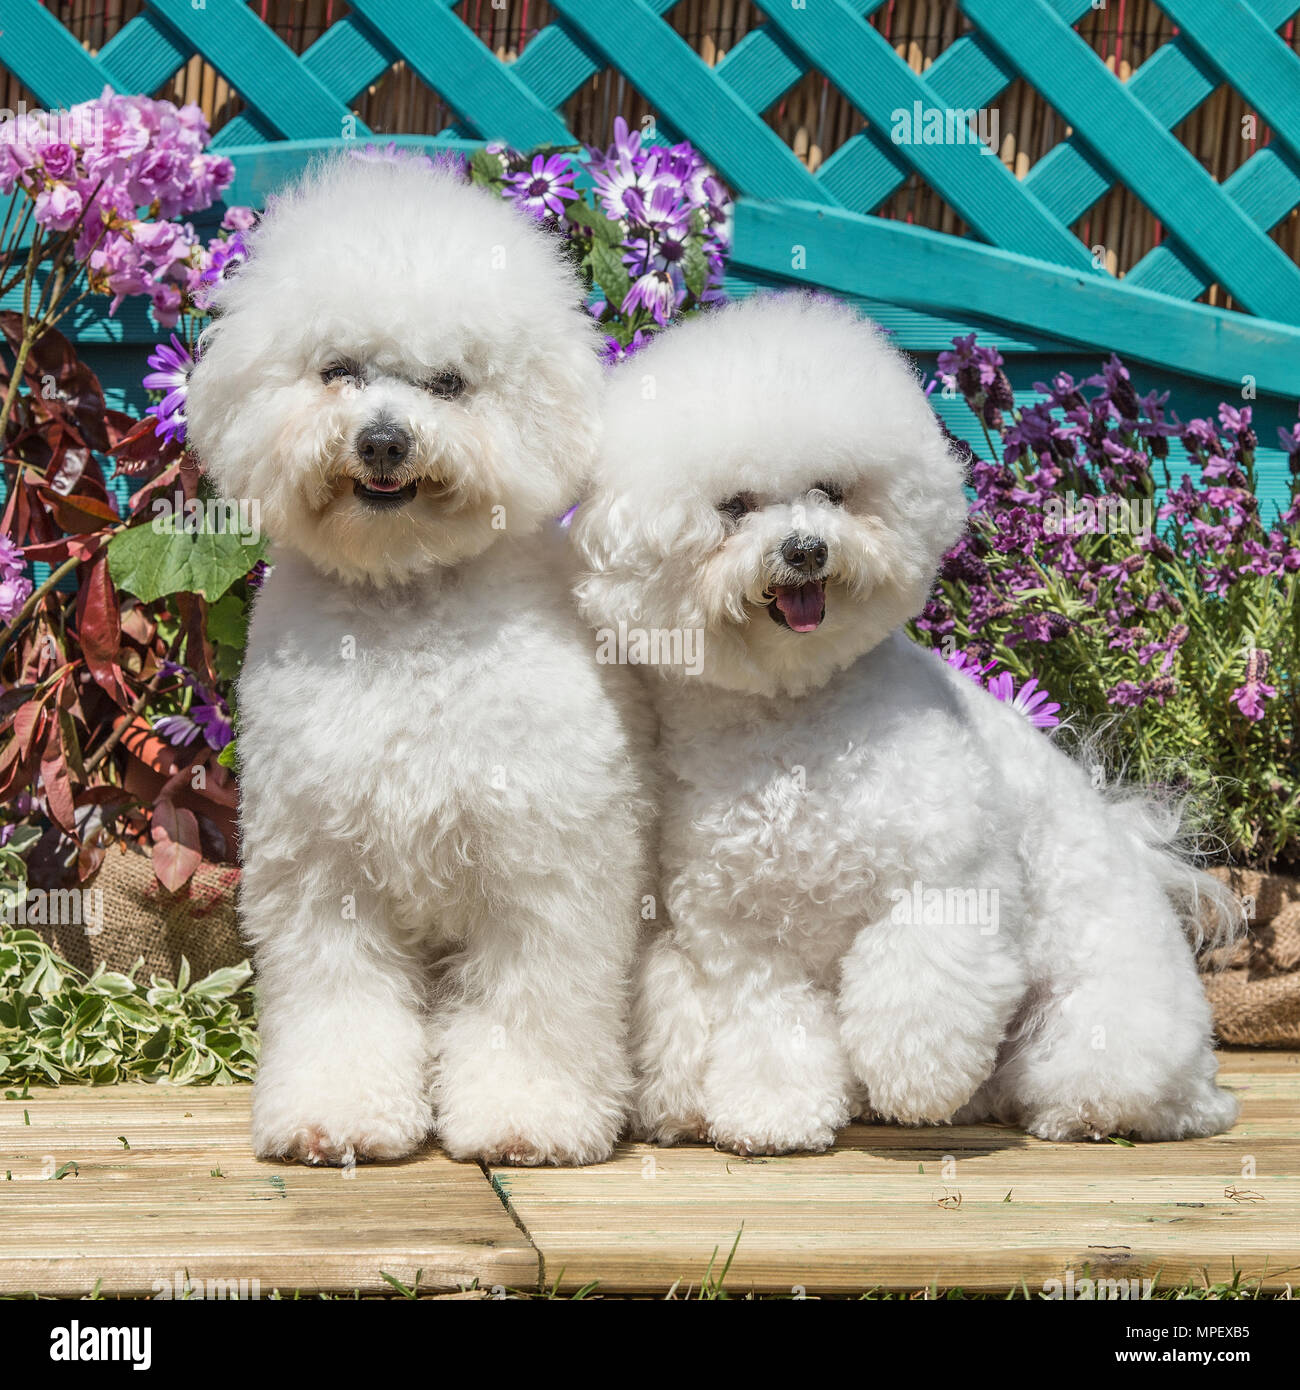 2 Bichon Frise Stock Photos & 2 Bichon Frise Stock Images